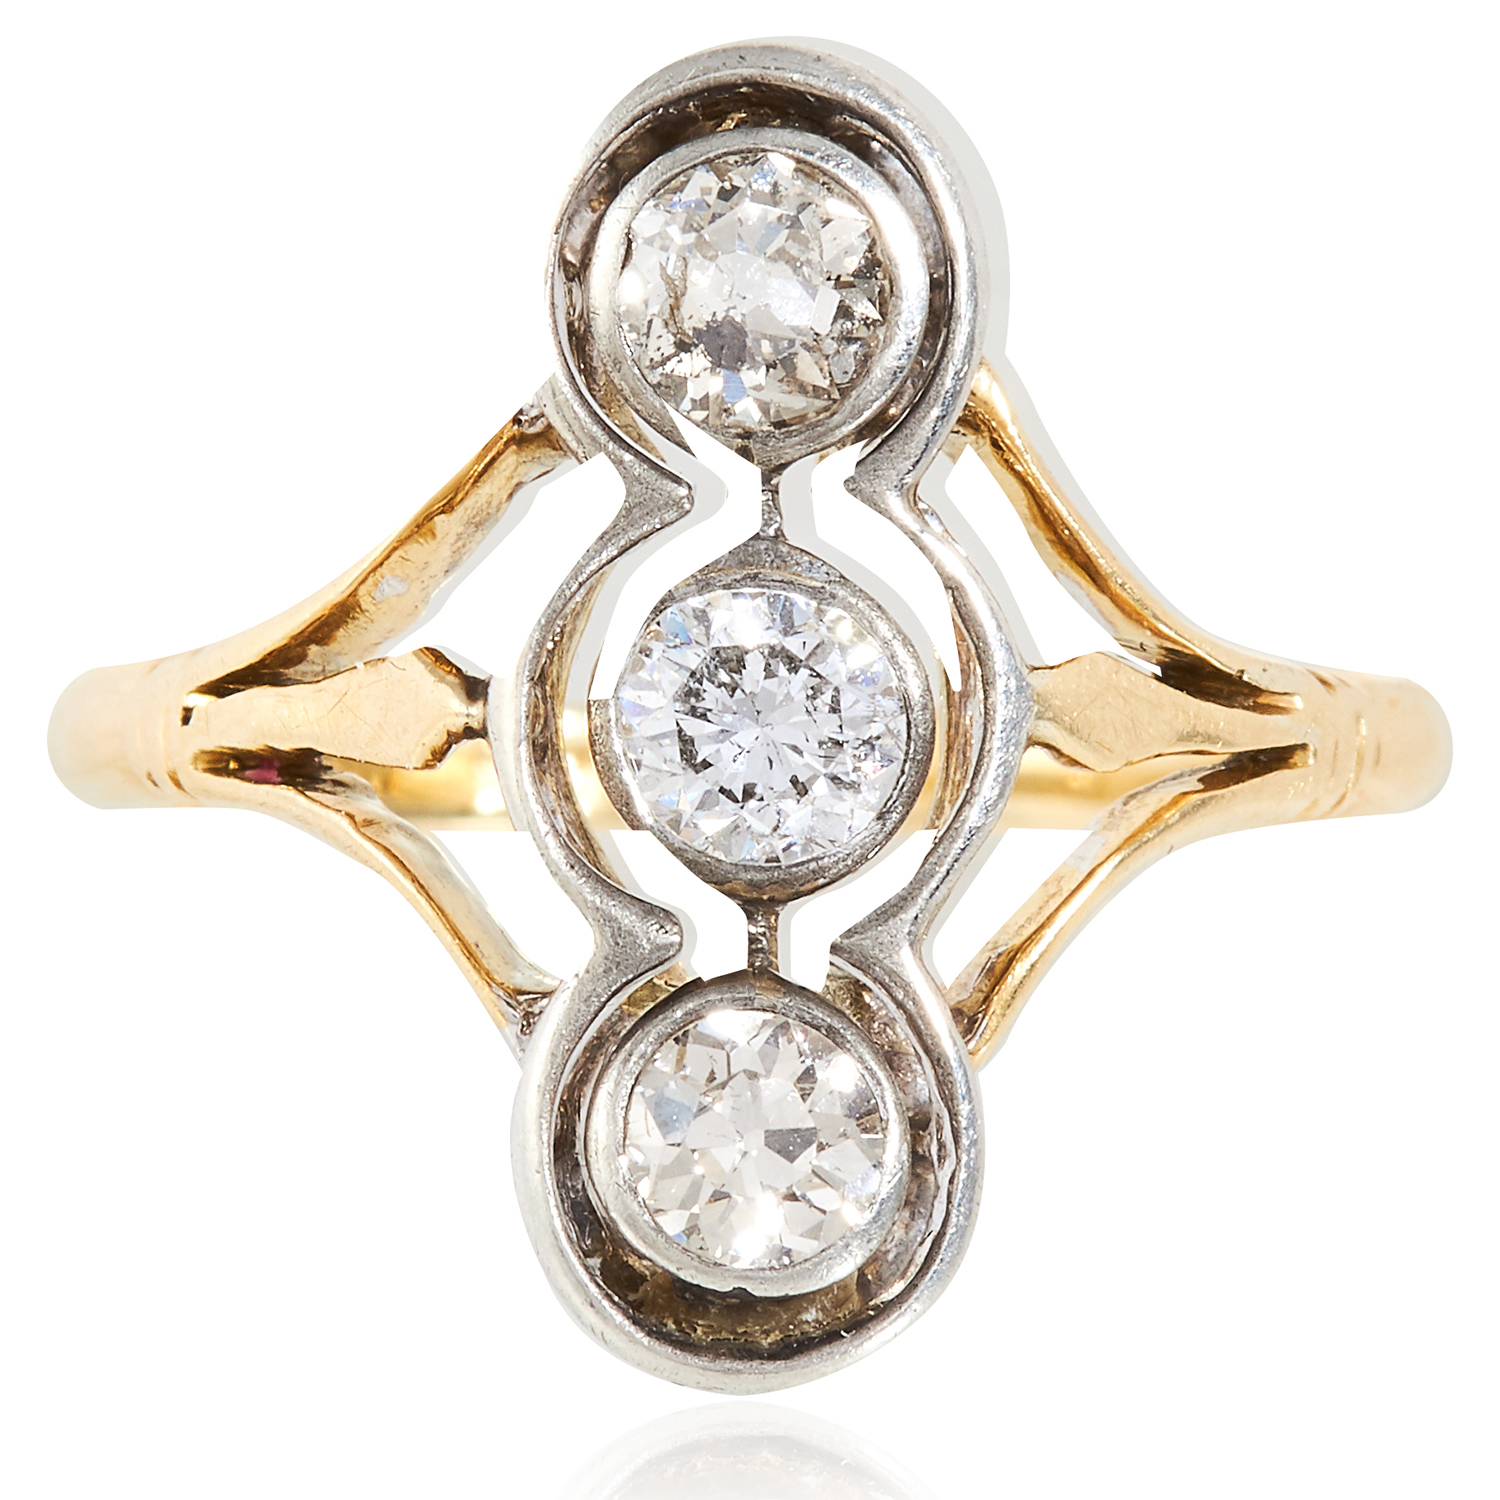 Los 33 - AN ART DECO DIAMOND THREE STONE RING in 18ct yellow gold and platinum, set with a trio of round